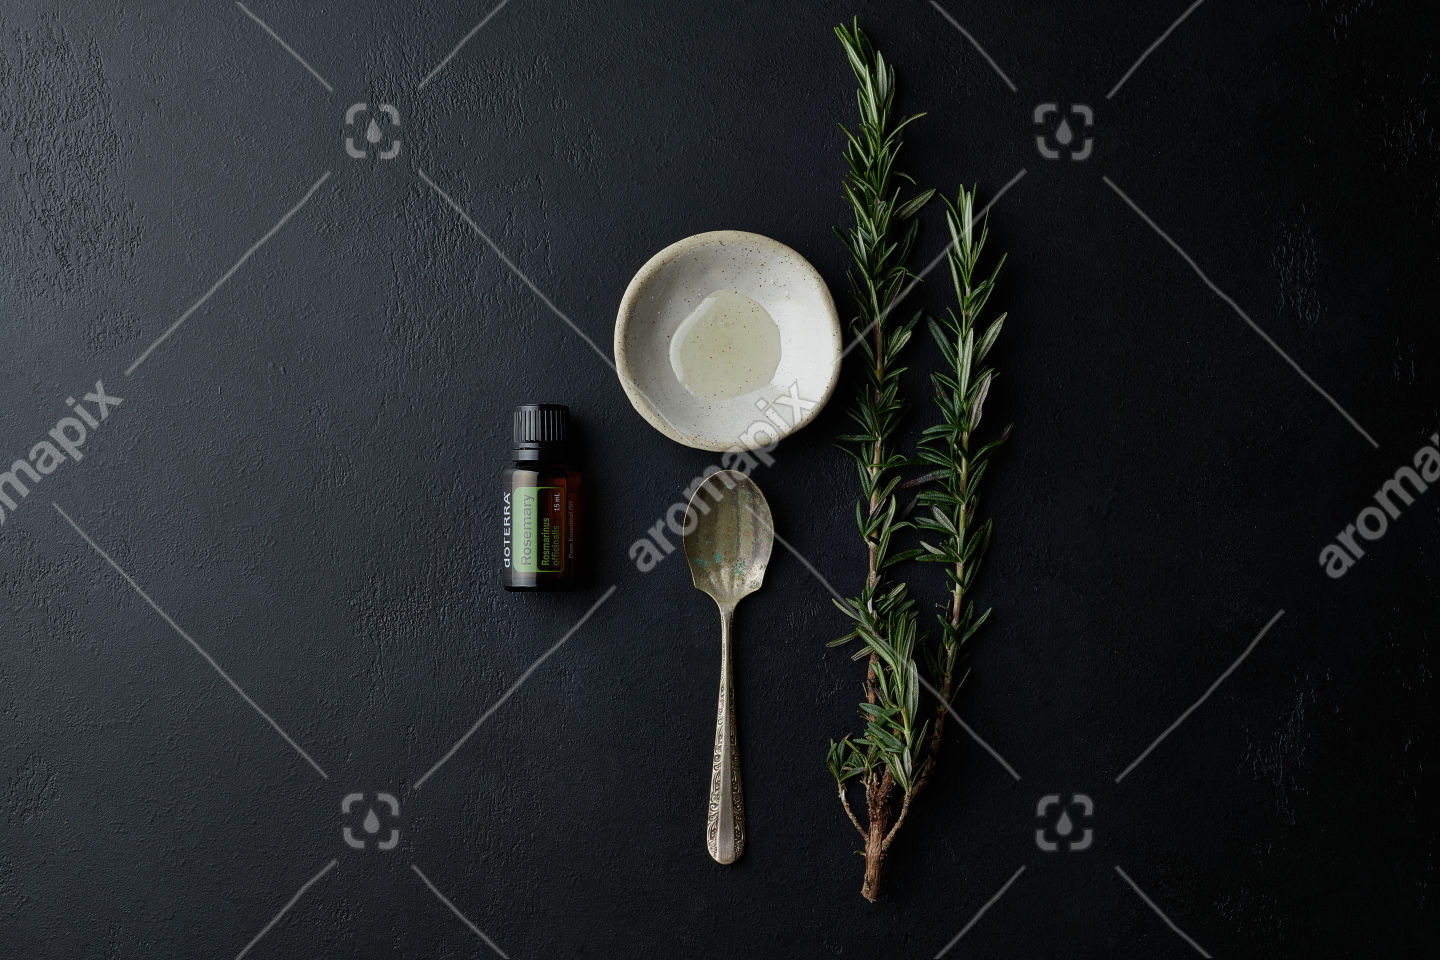 doTERRA Rosemary with kitchen utensils and a rosemary branch on black